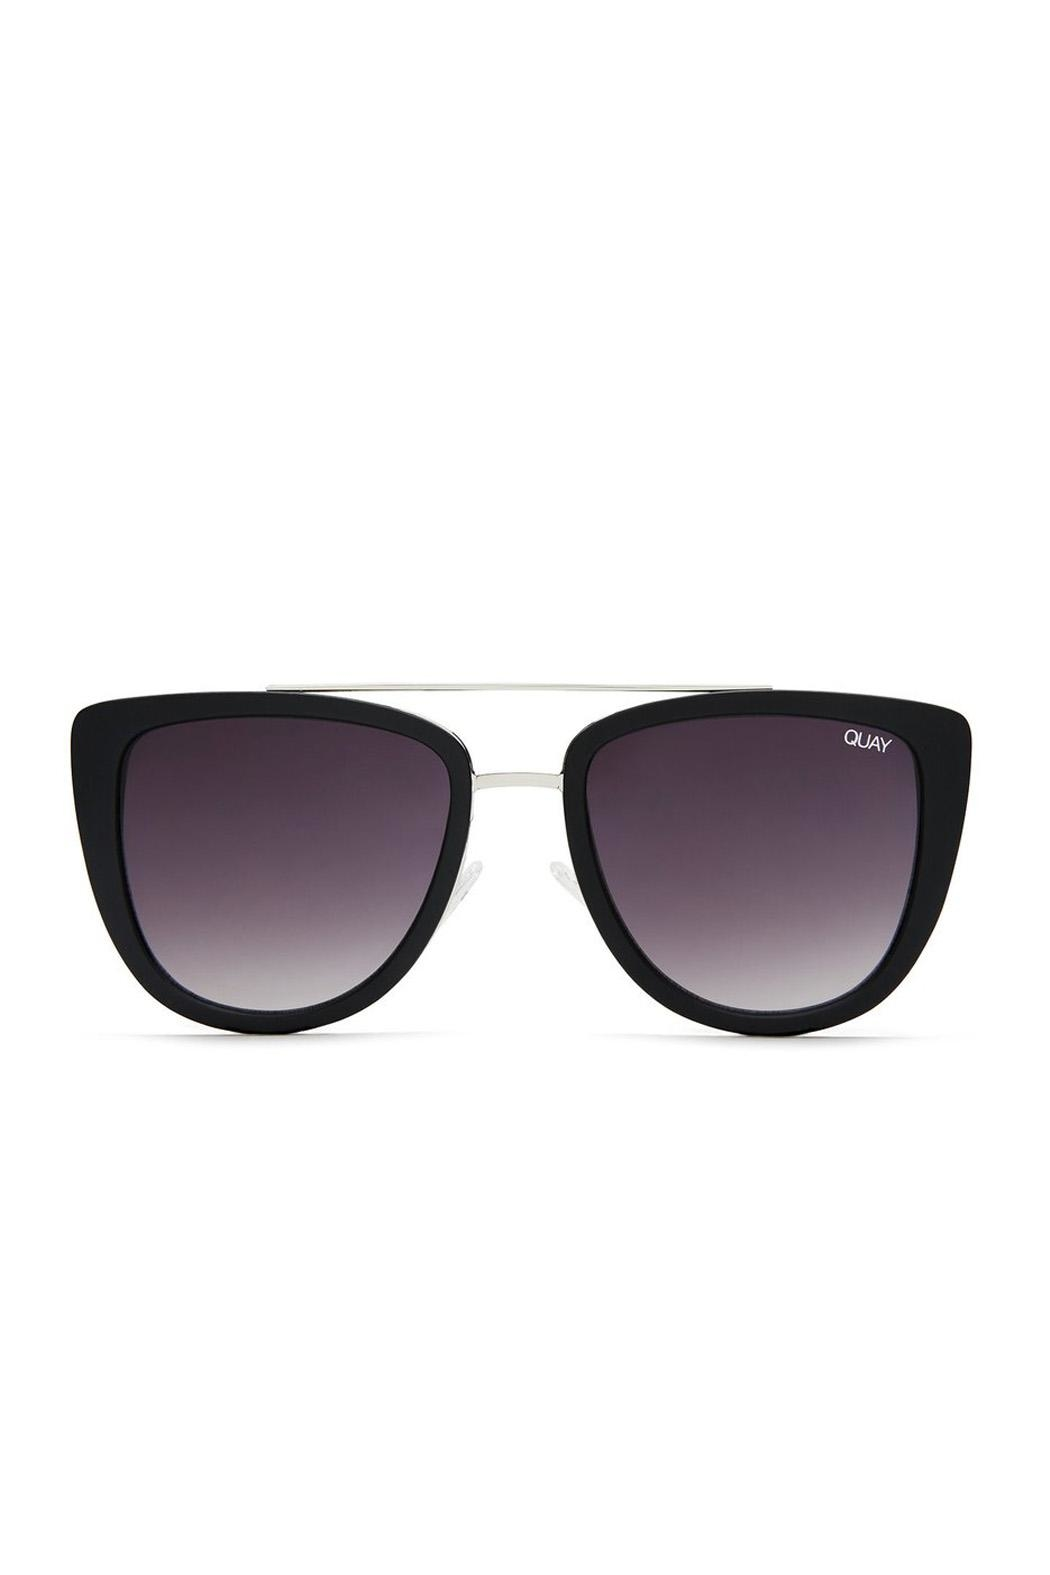 Quay Australia French Kiss Sunglasses - Front Cropped Image